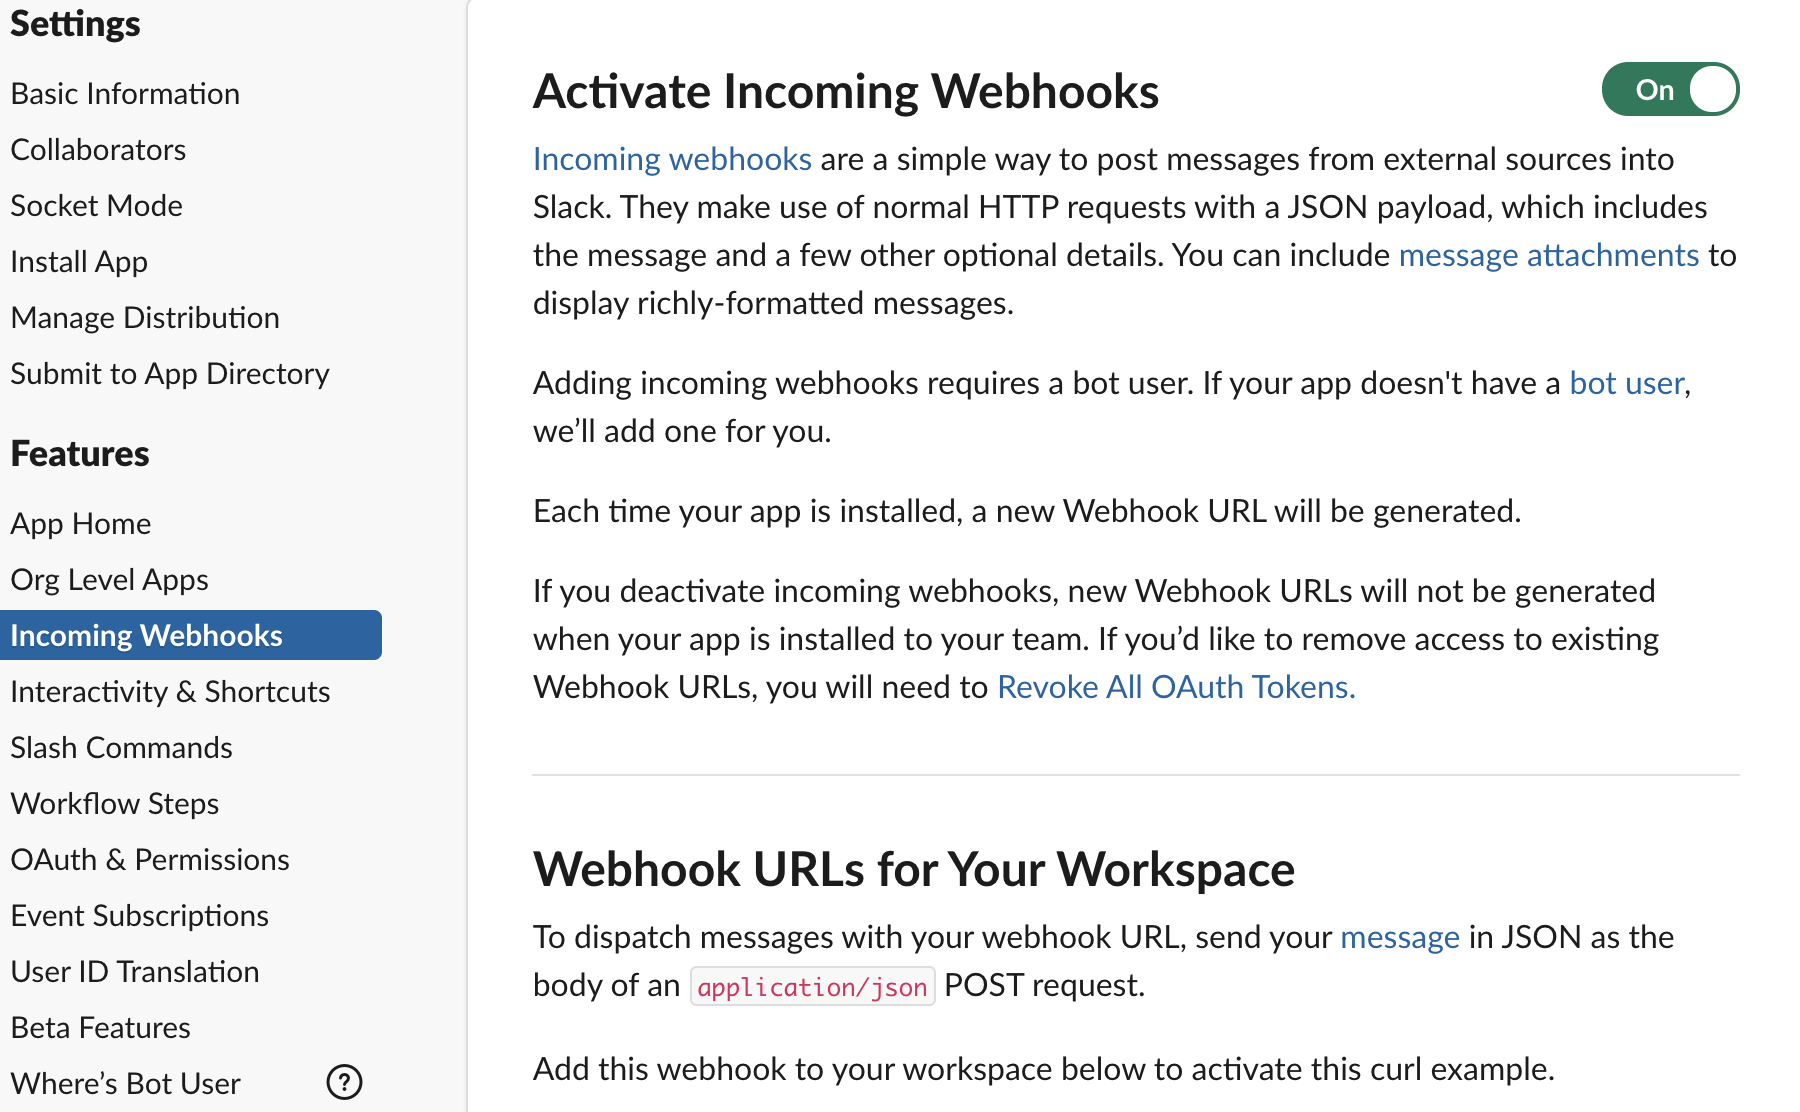 Activate Incoming Webhooks in Slack App Settings